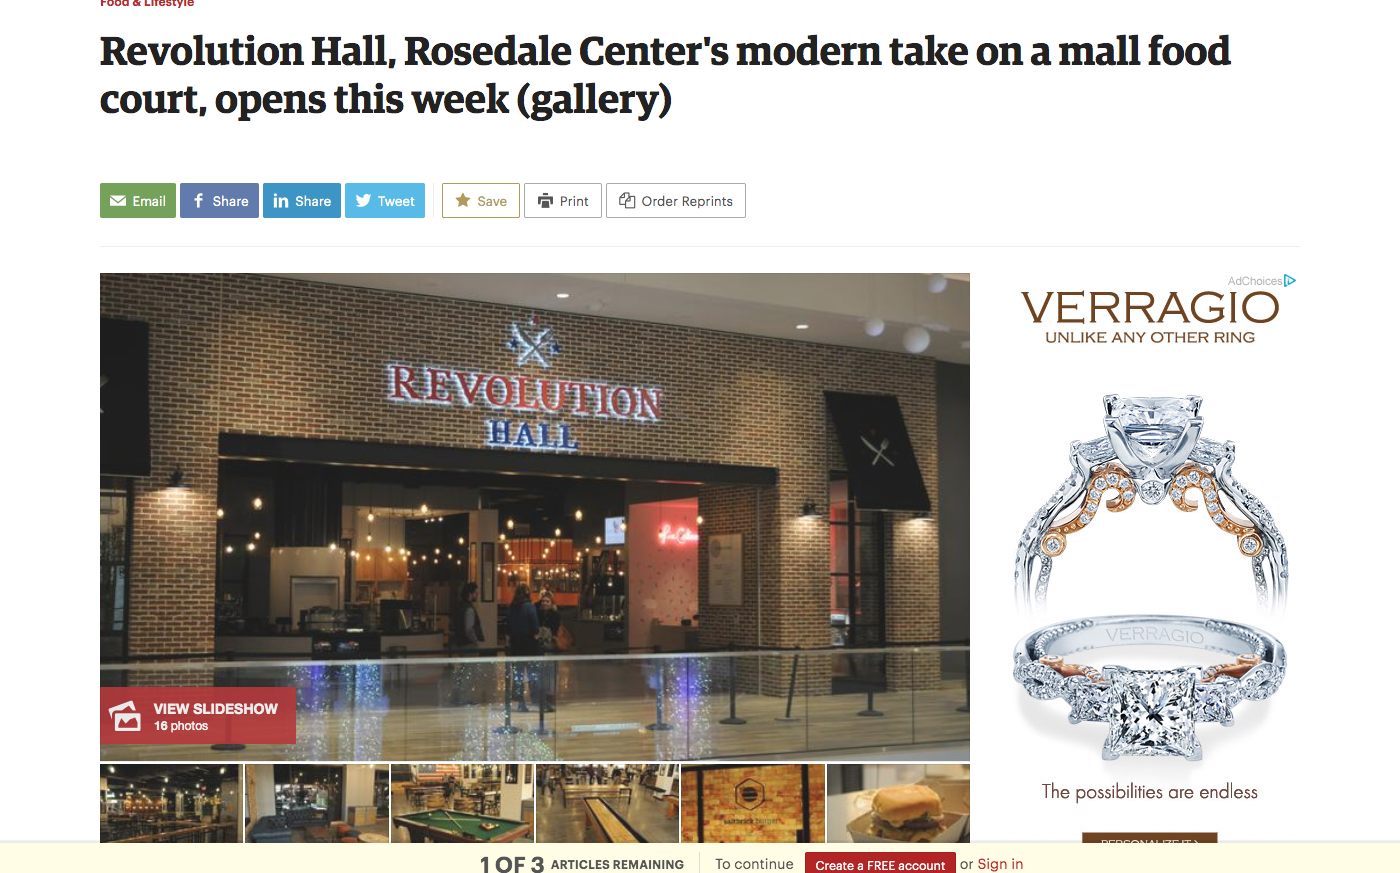 Revolution Hall, Rosedale Center's modern take on a mall food court, opens this week (gallery)